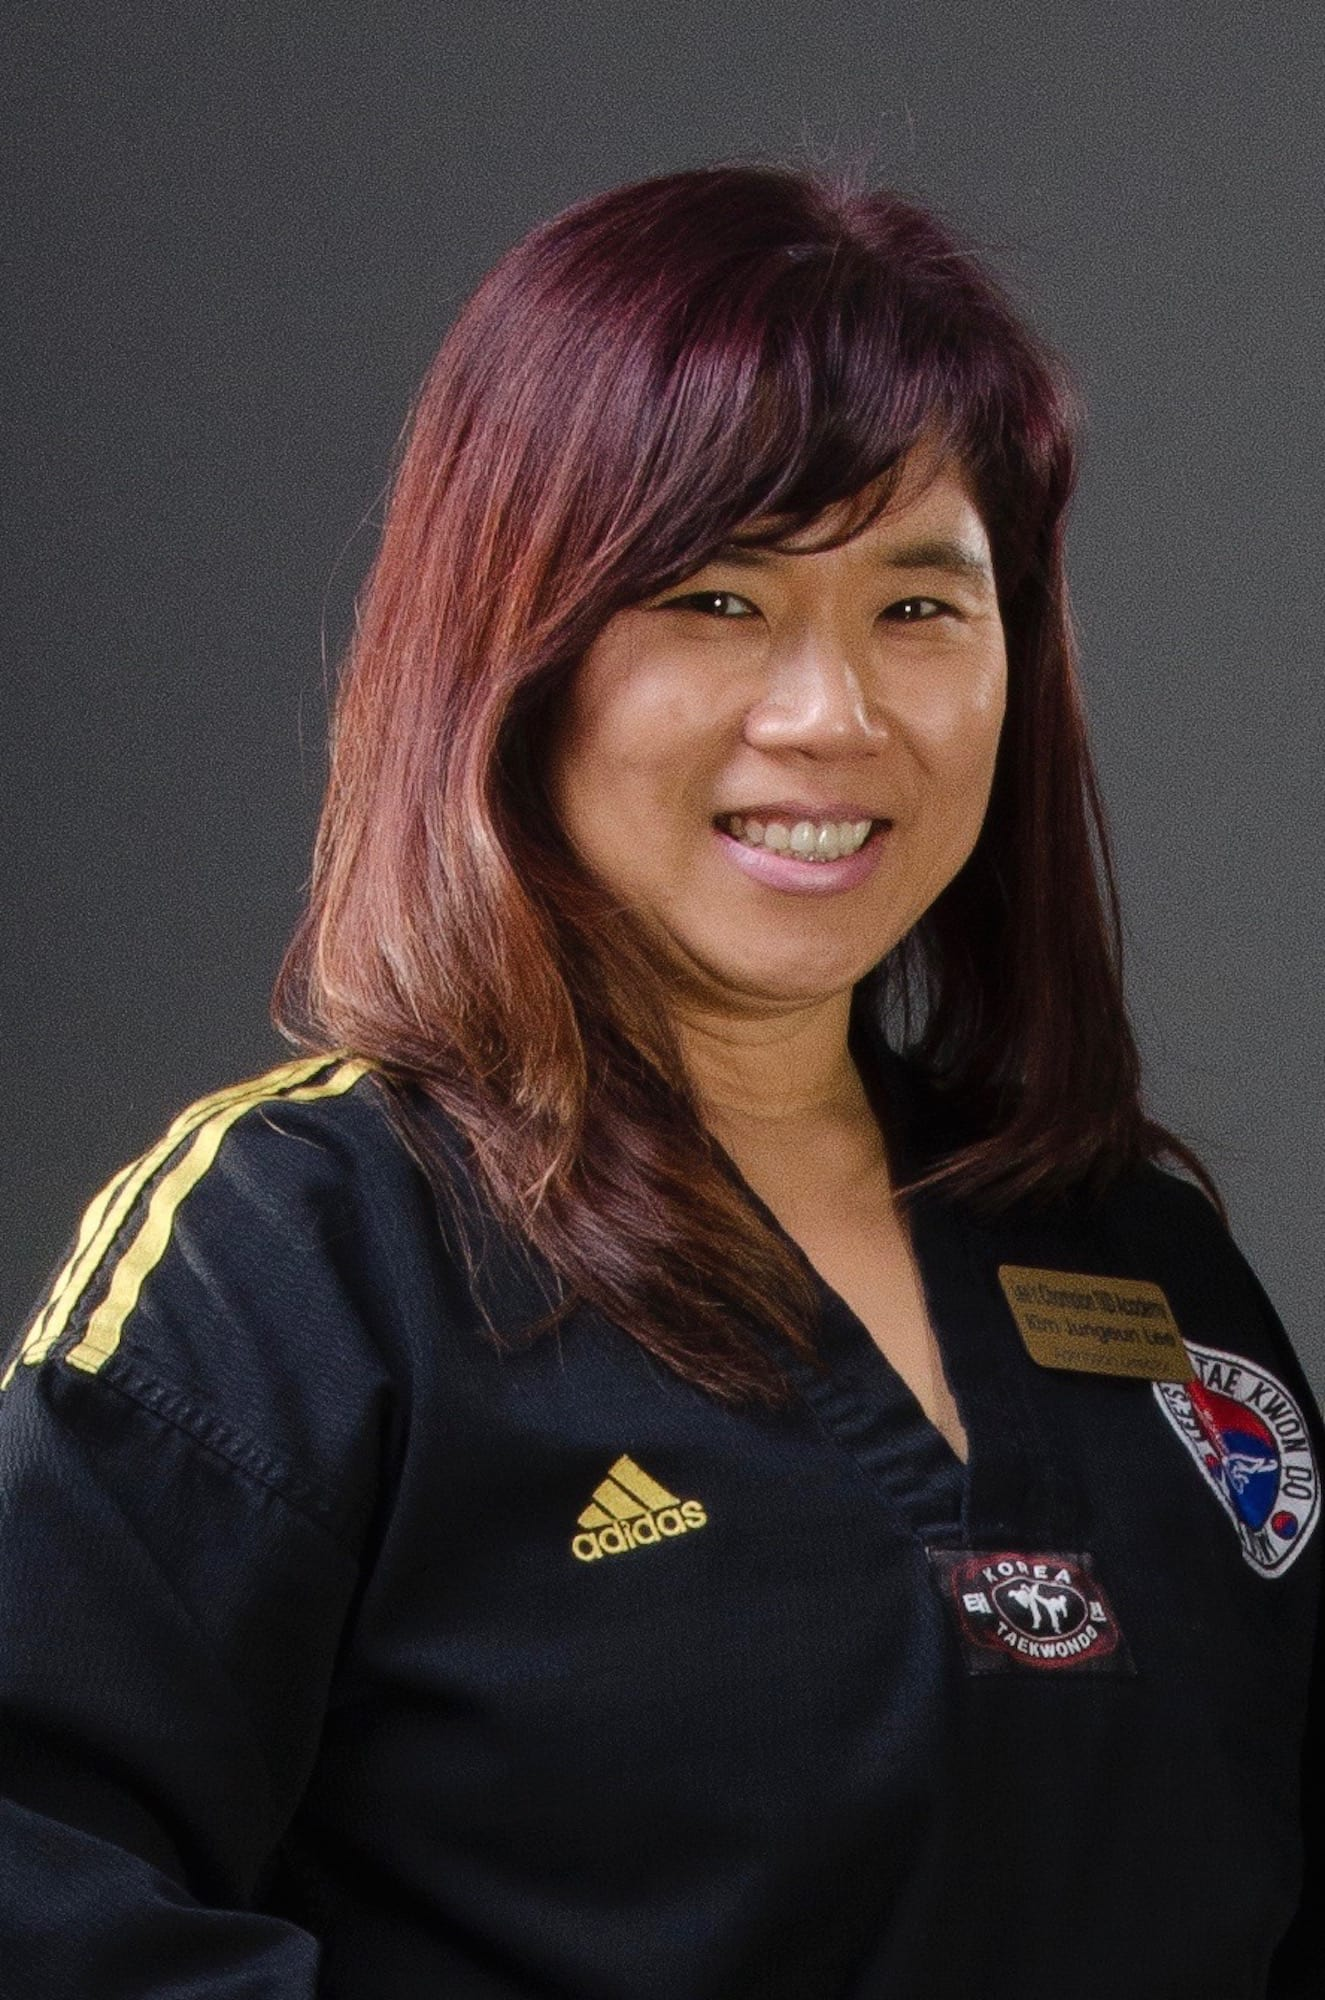 Master Kim Jung Eun Lee in Shoreview - Lee's Champion Taekwondo Academy